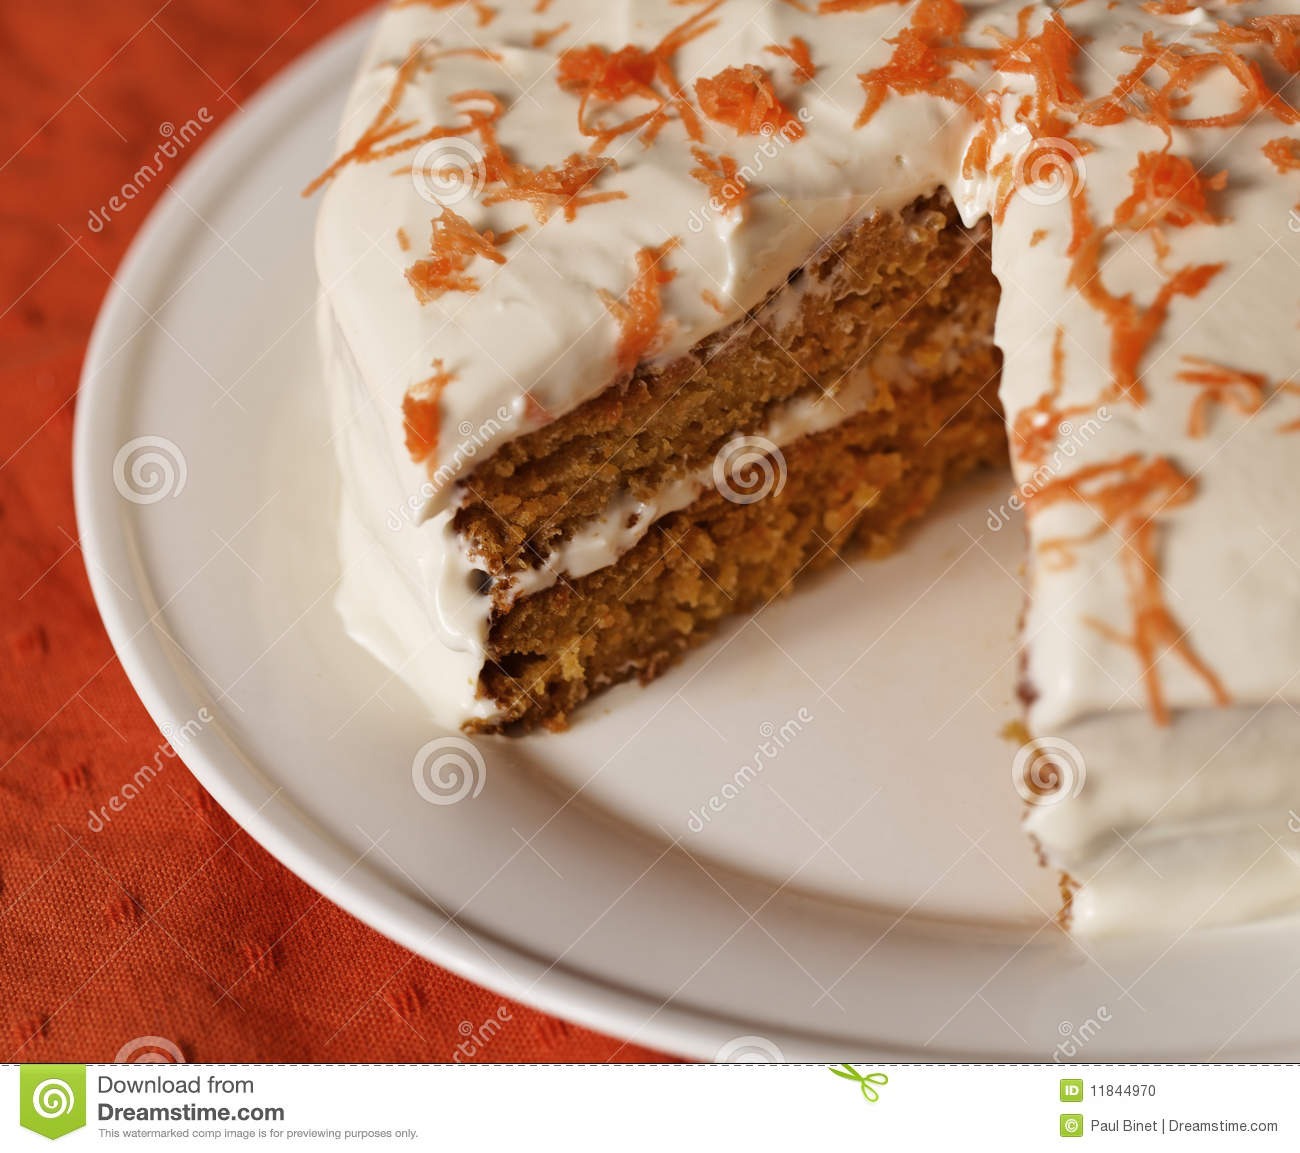 Calories In A Slice Of Frosted Cake